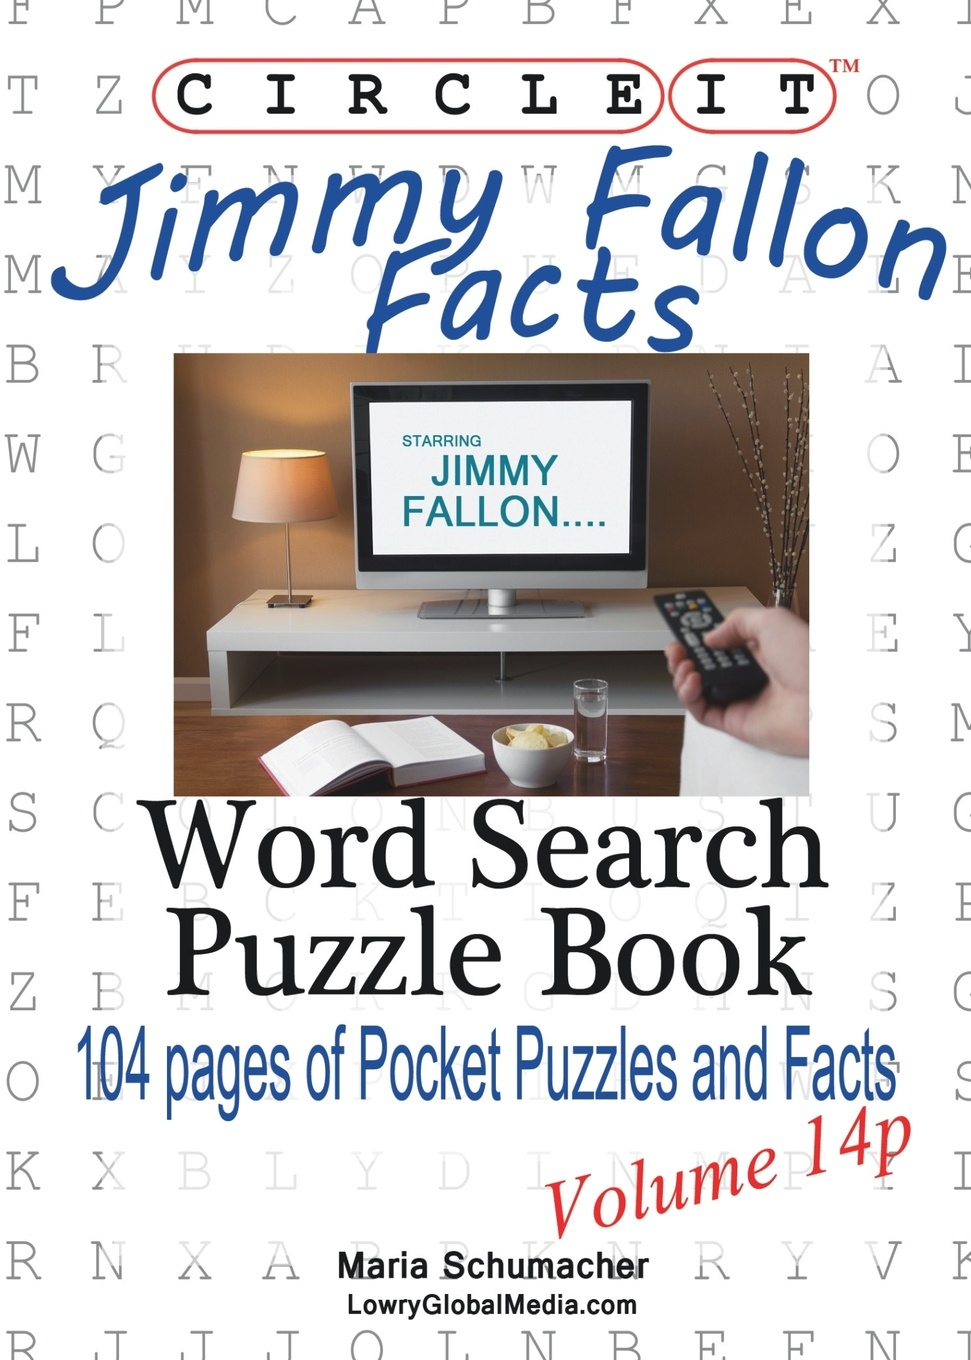 Lowry Global Media LLC, Maria Schumacher Circle It, Jimmy Fallon Facts, Pocket Size, Word Search, Puzzle Book brian fallon manchester